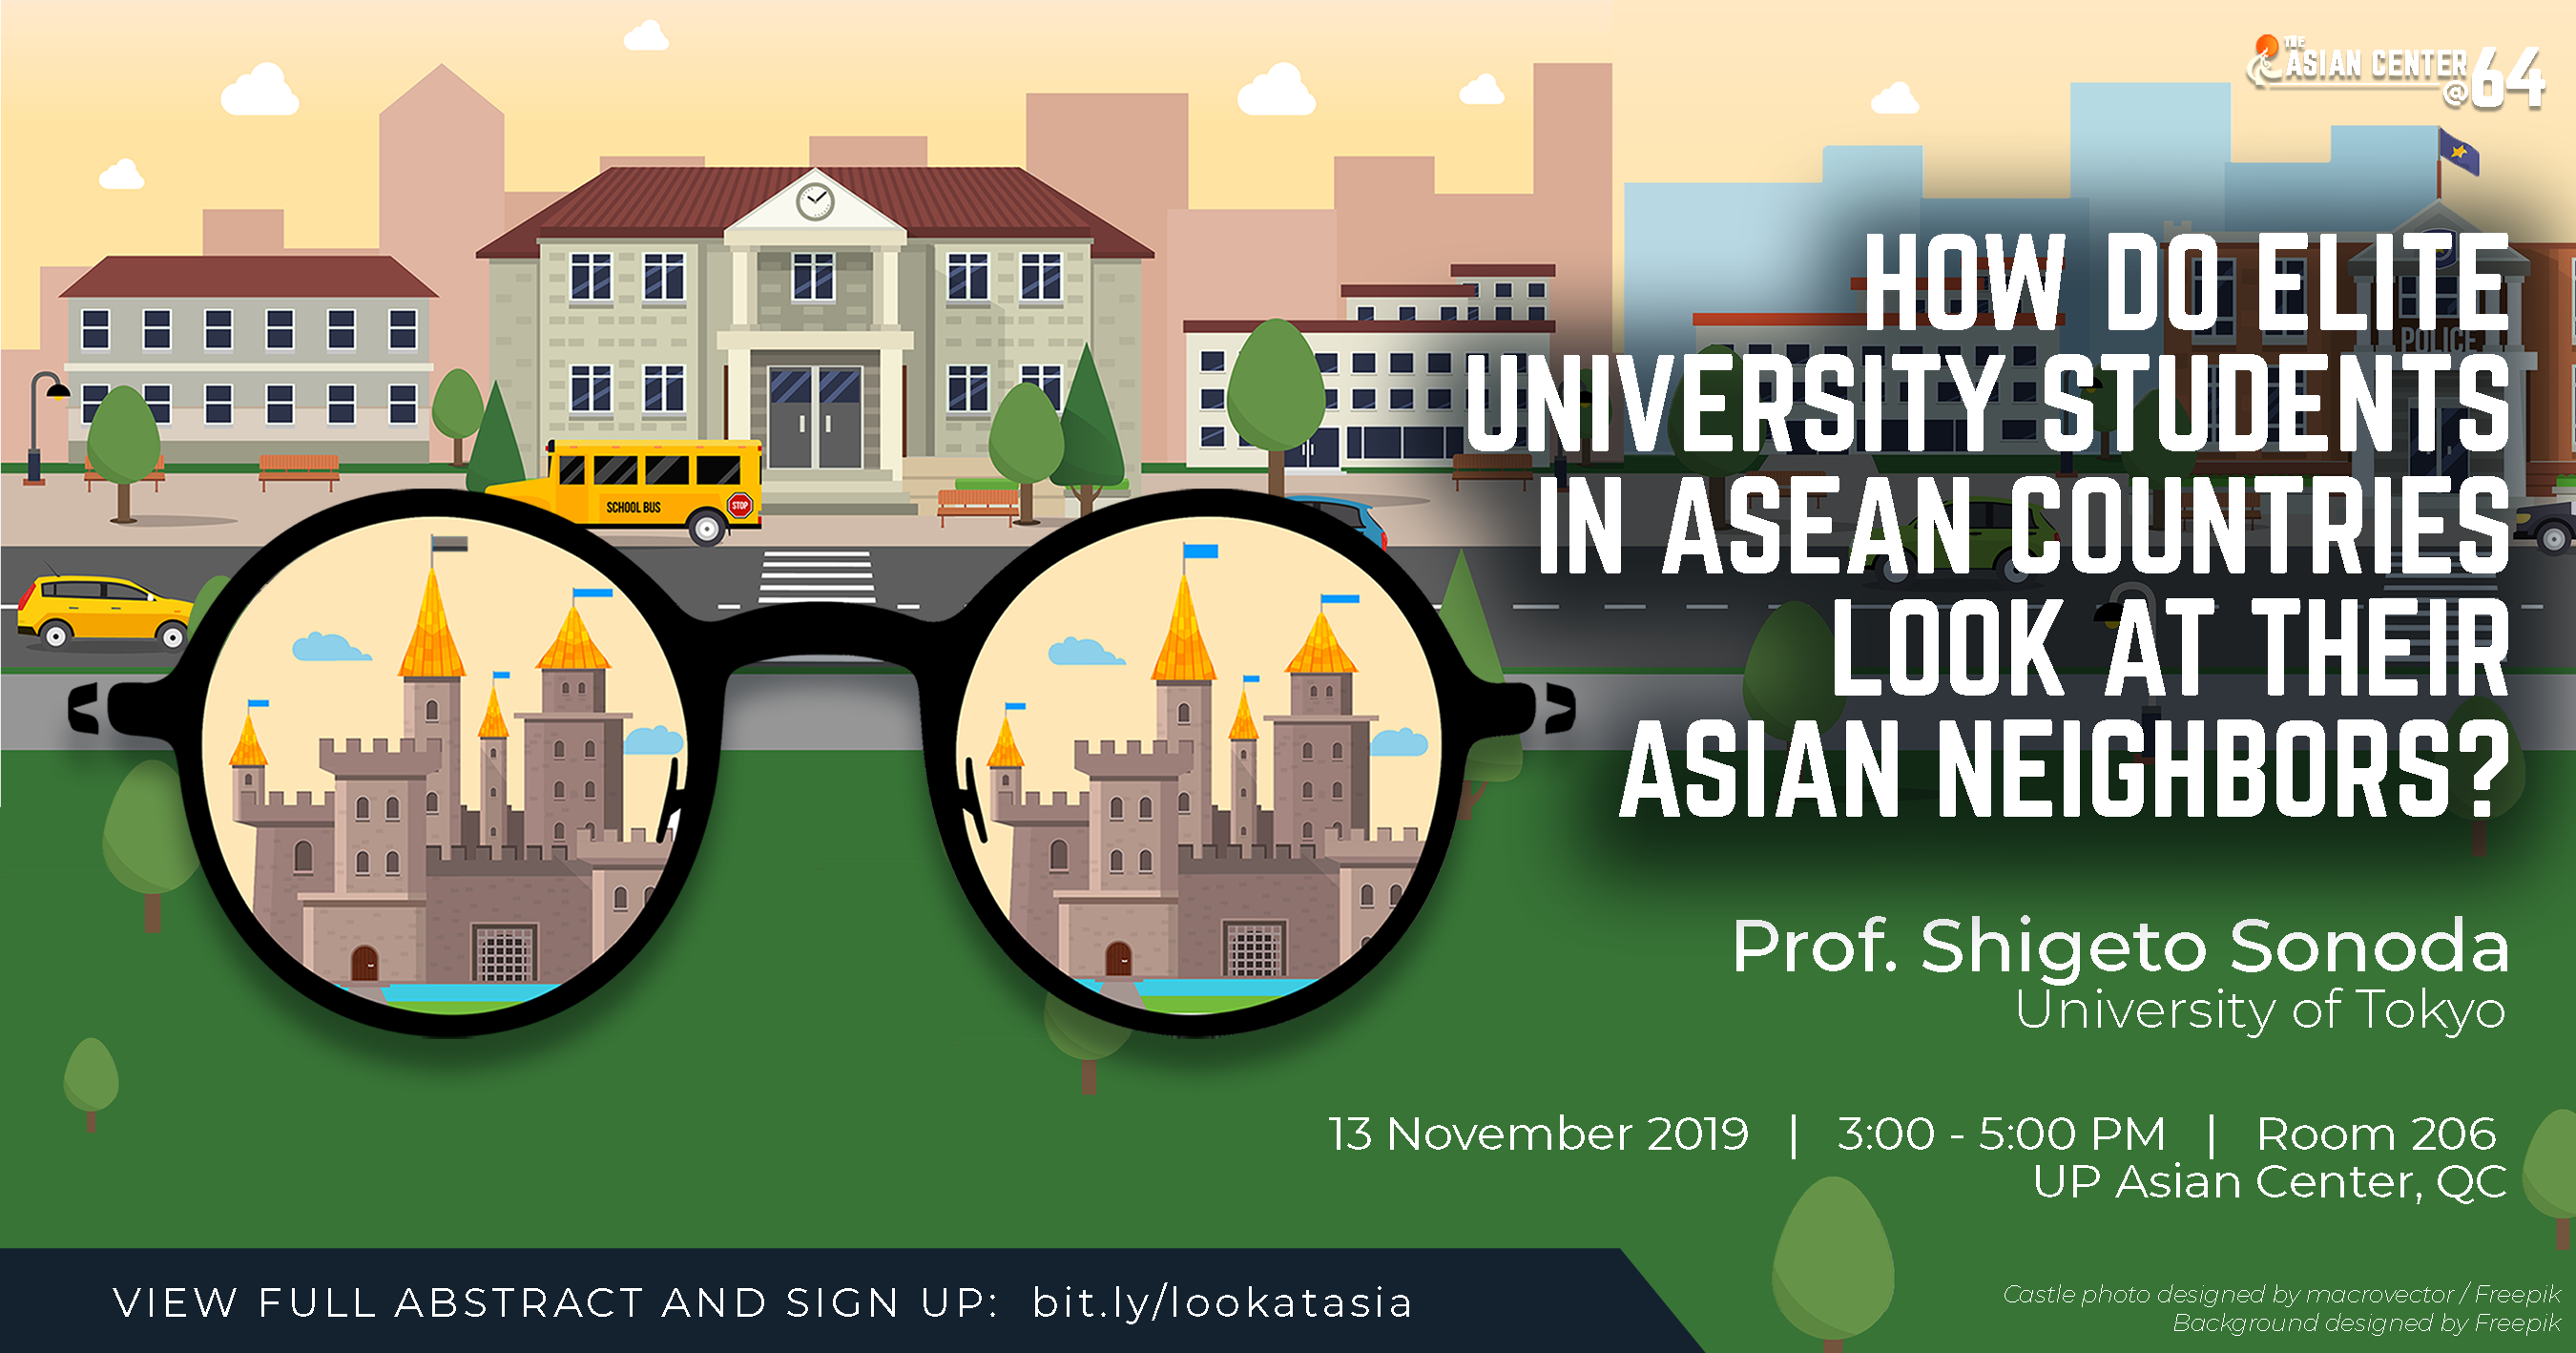 How Do Elite University Students in ASEAN Look at their Asian Neighbors? | A Lecture